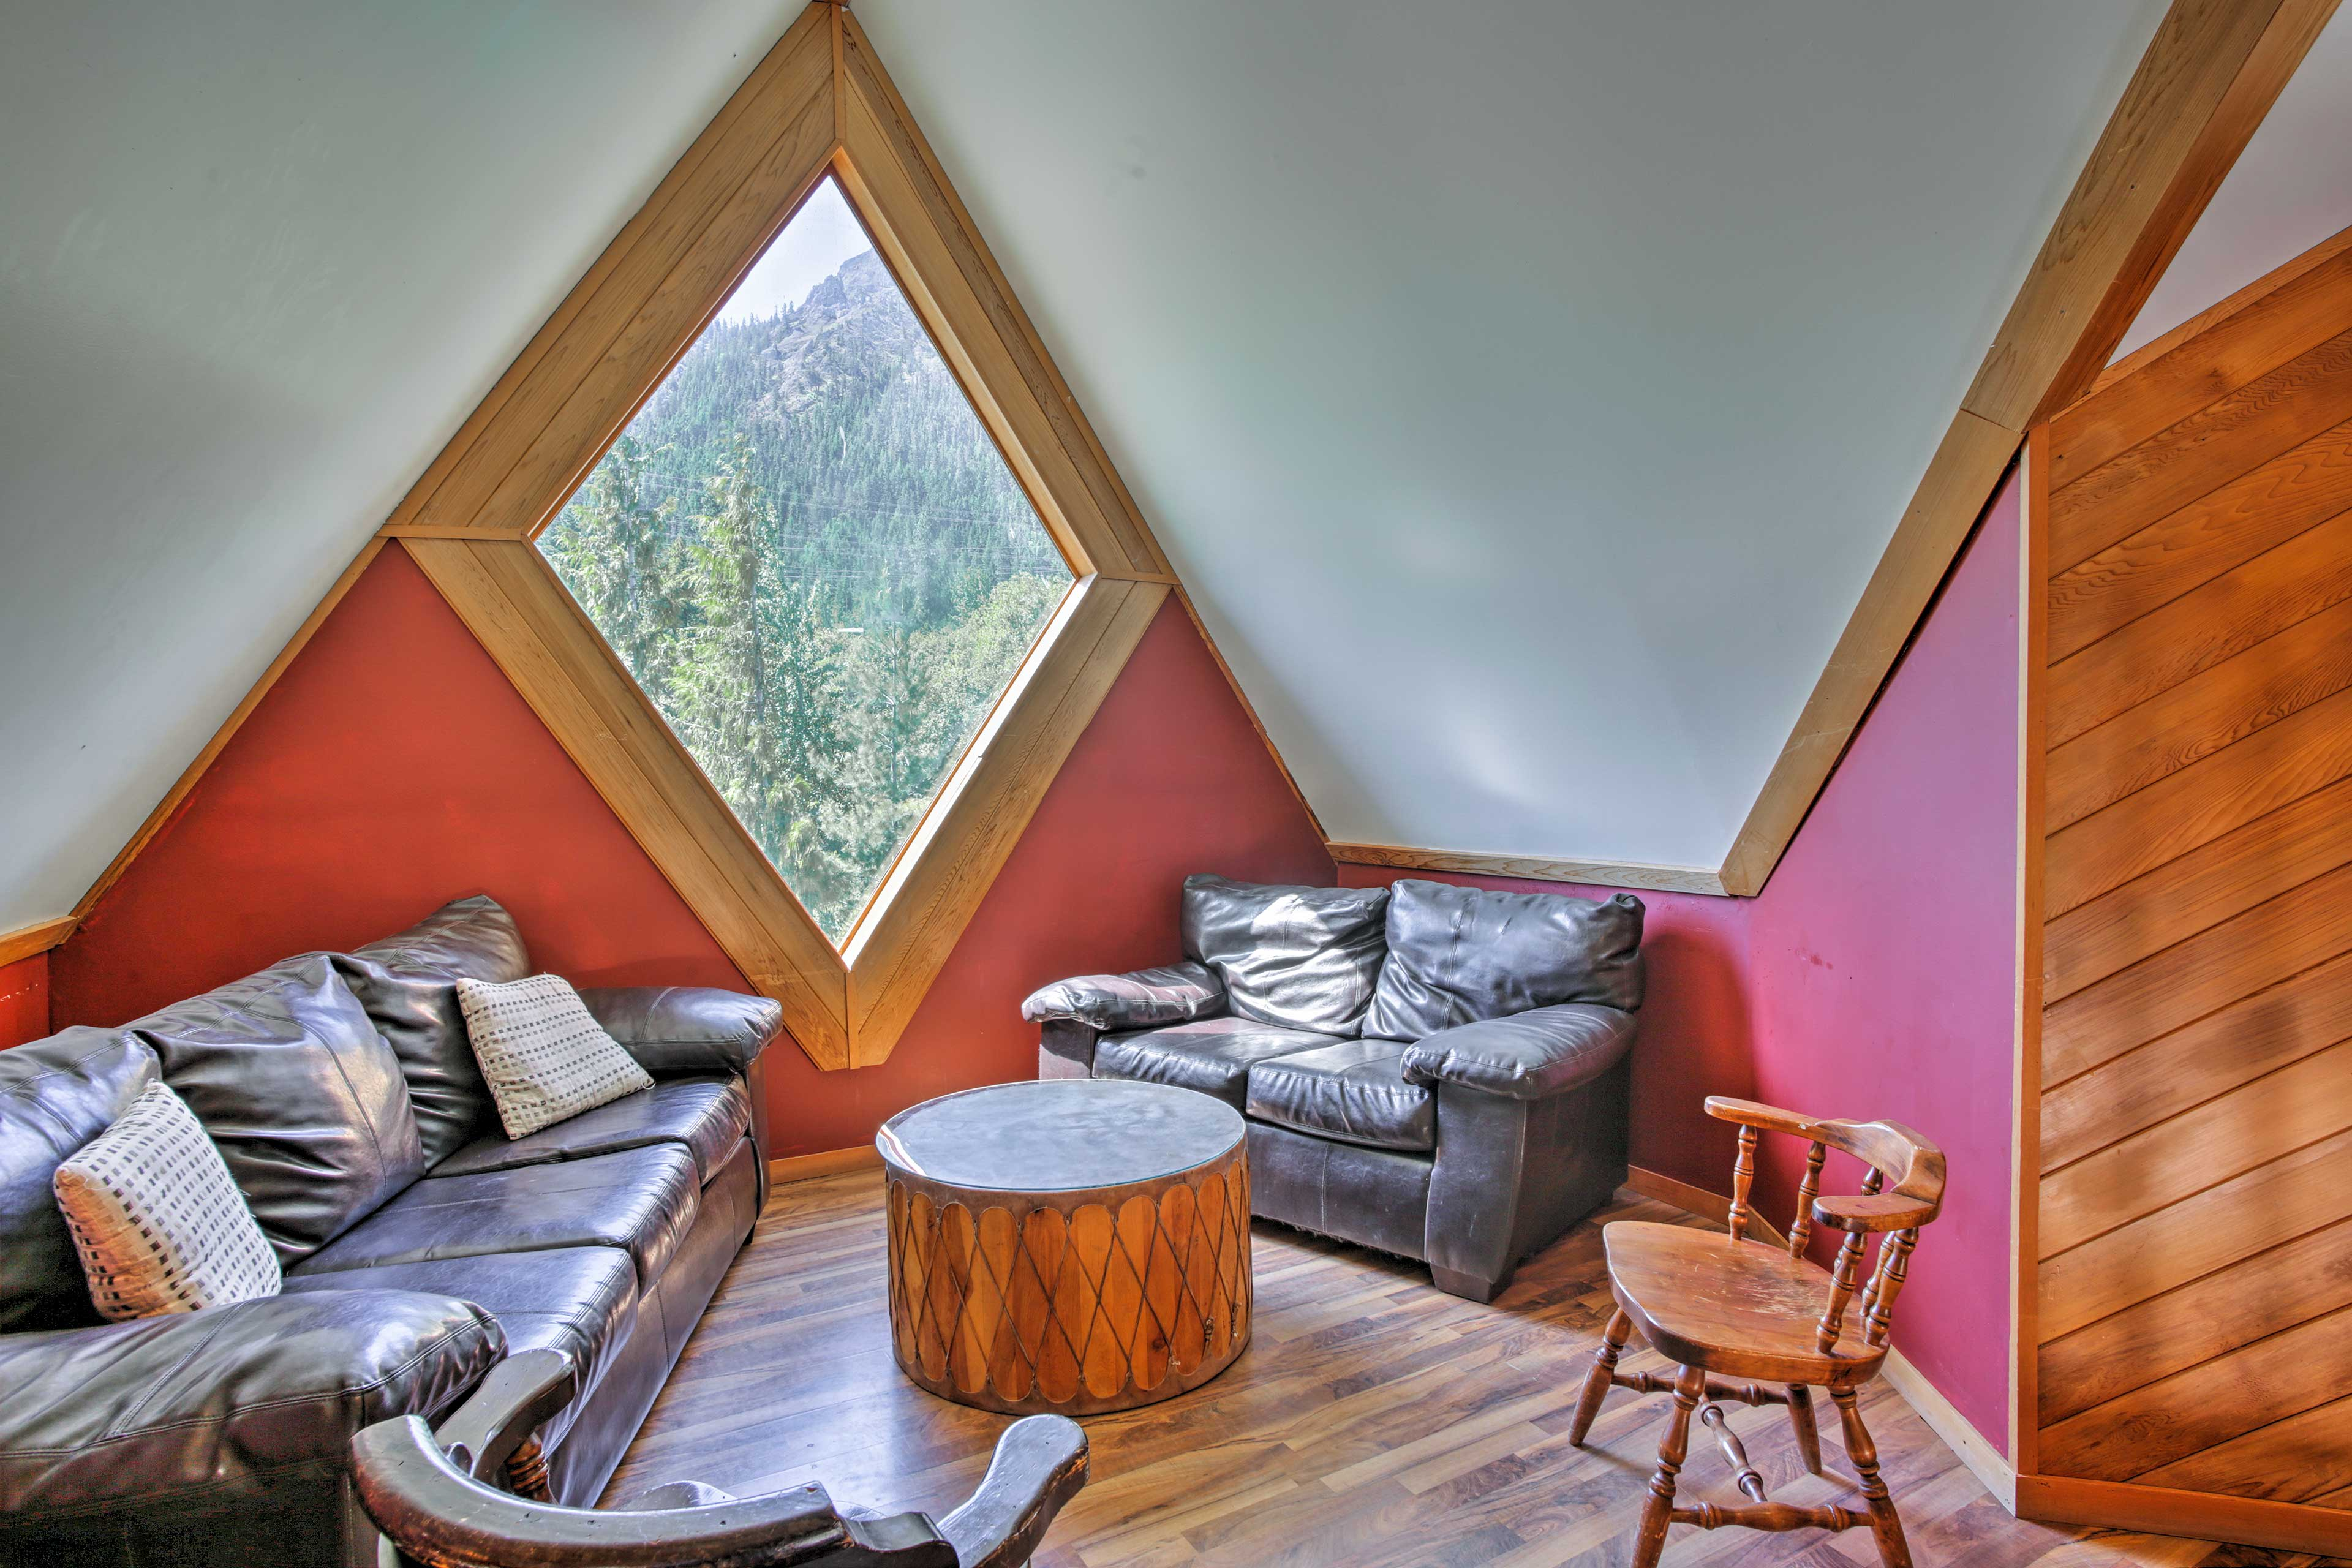 Curl up with a good read in the cozy nook in the loft.